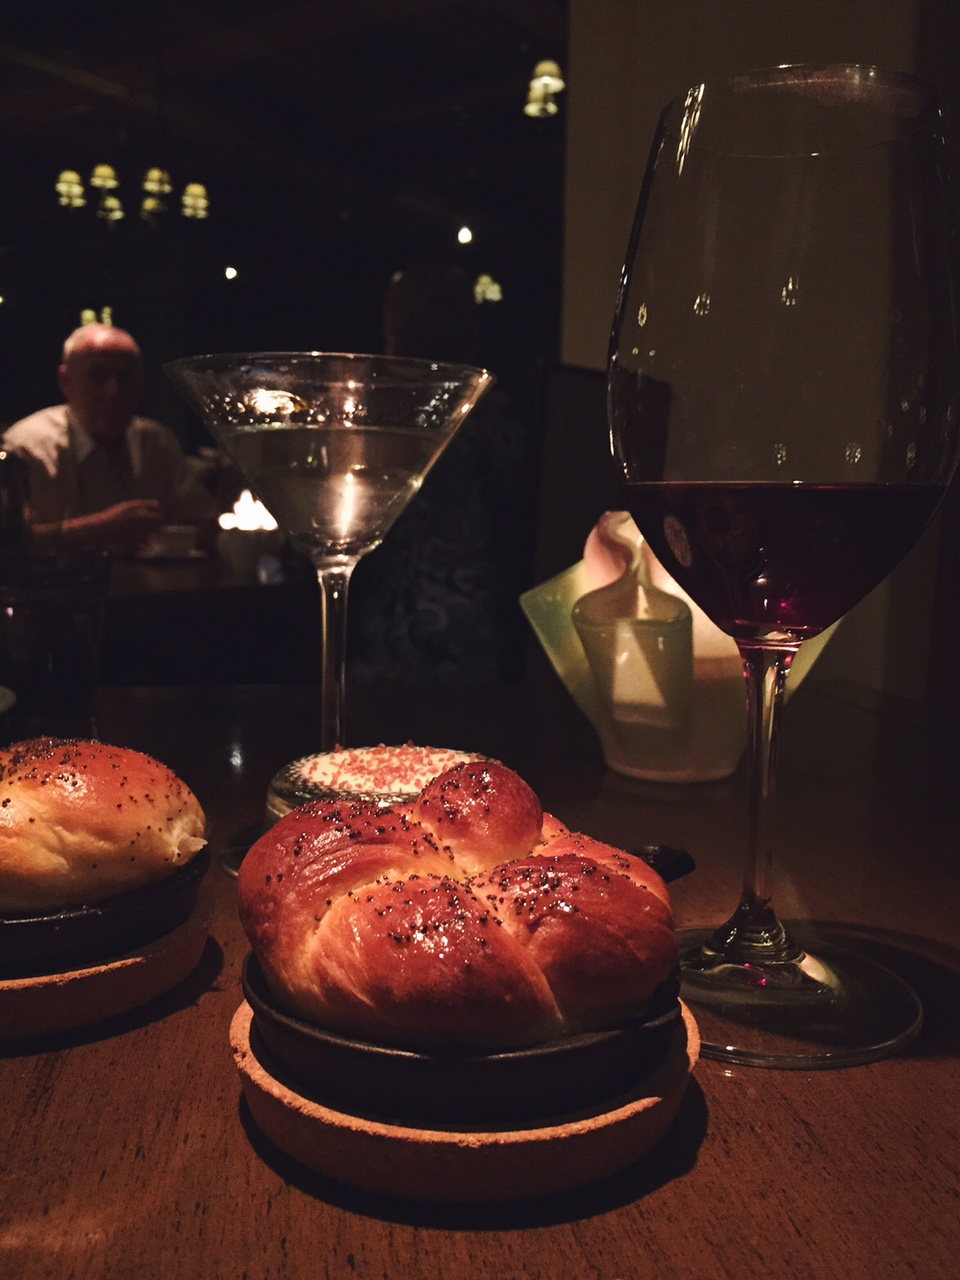 bread and wine at a restaurant in scottsdale